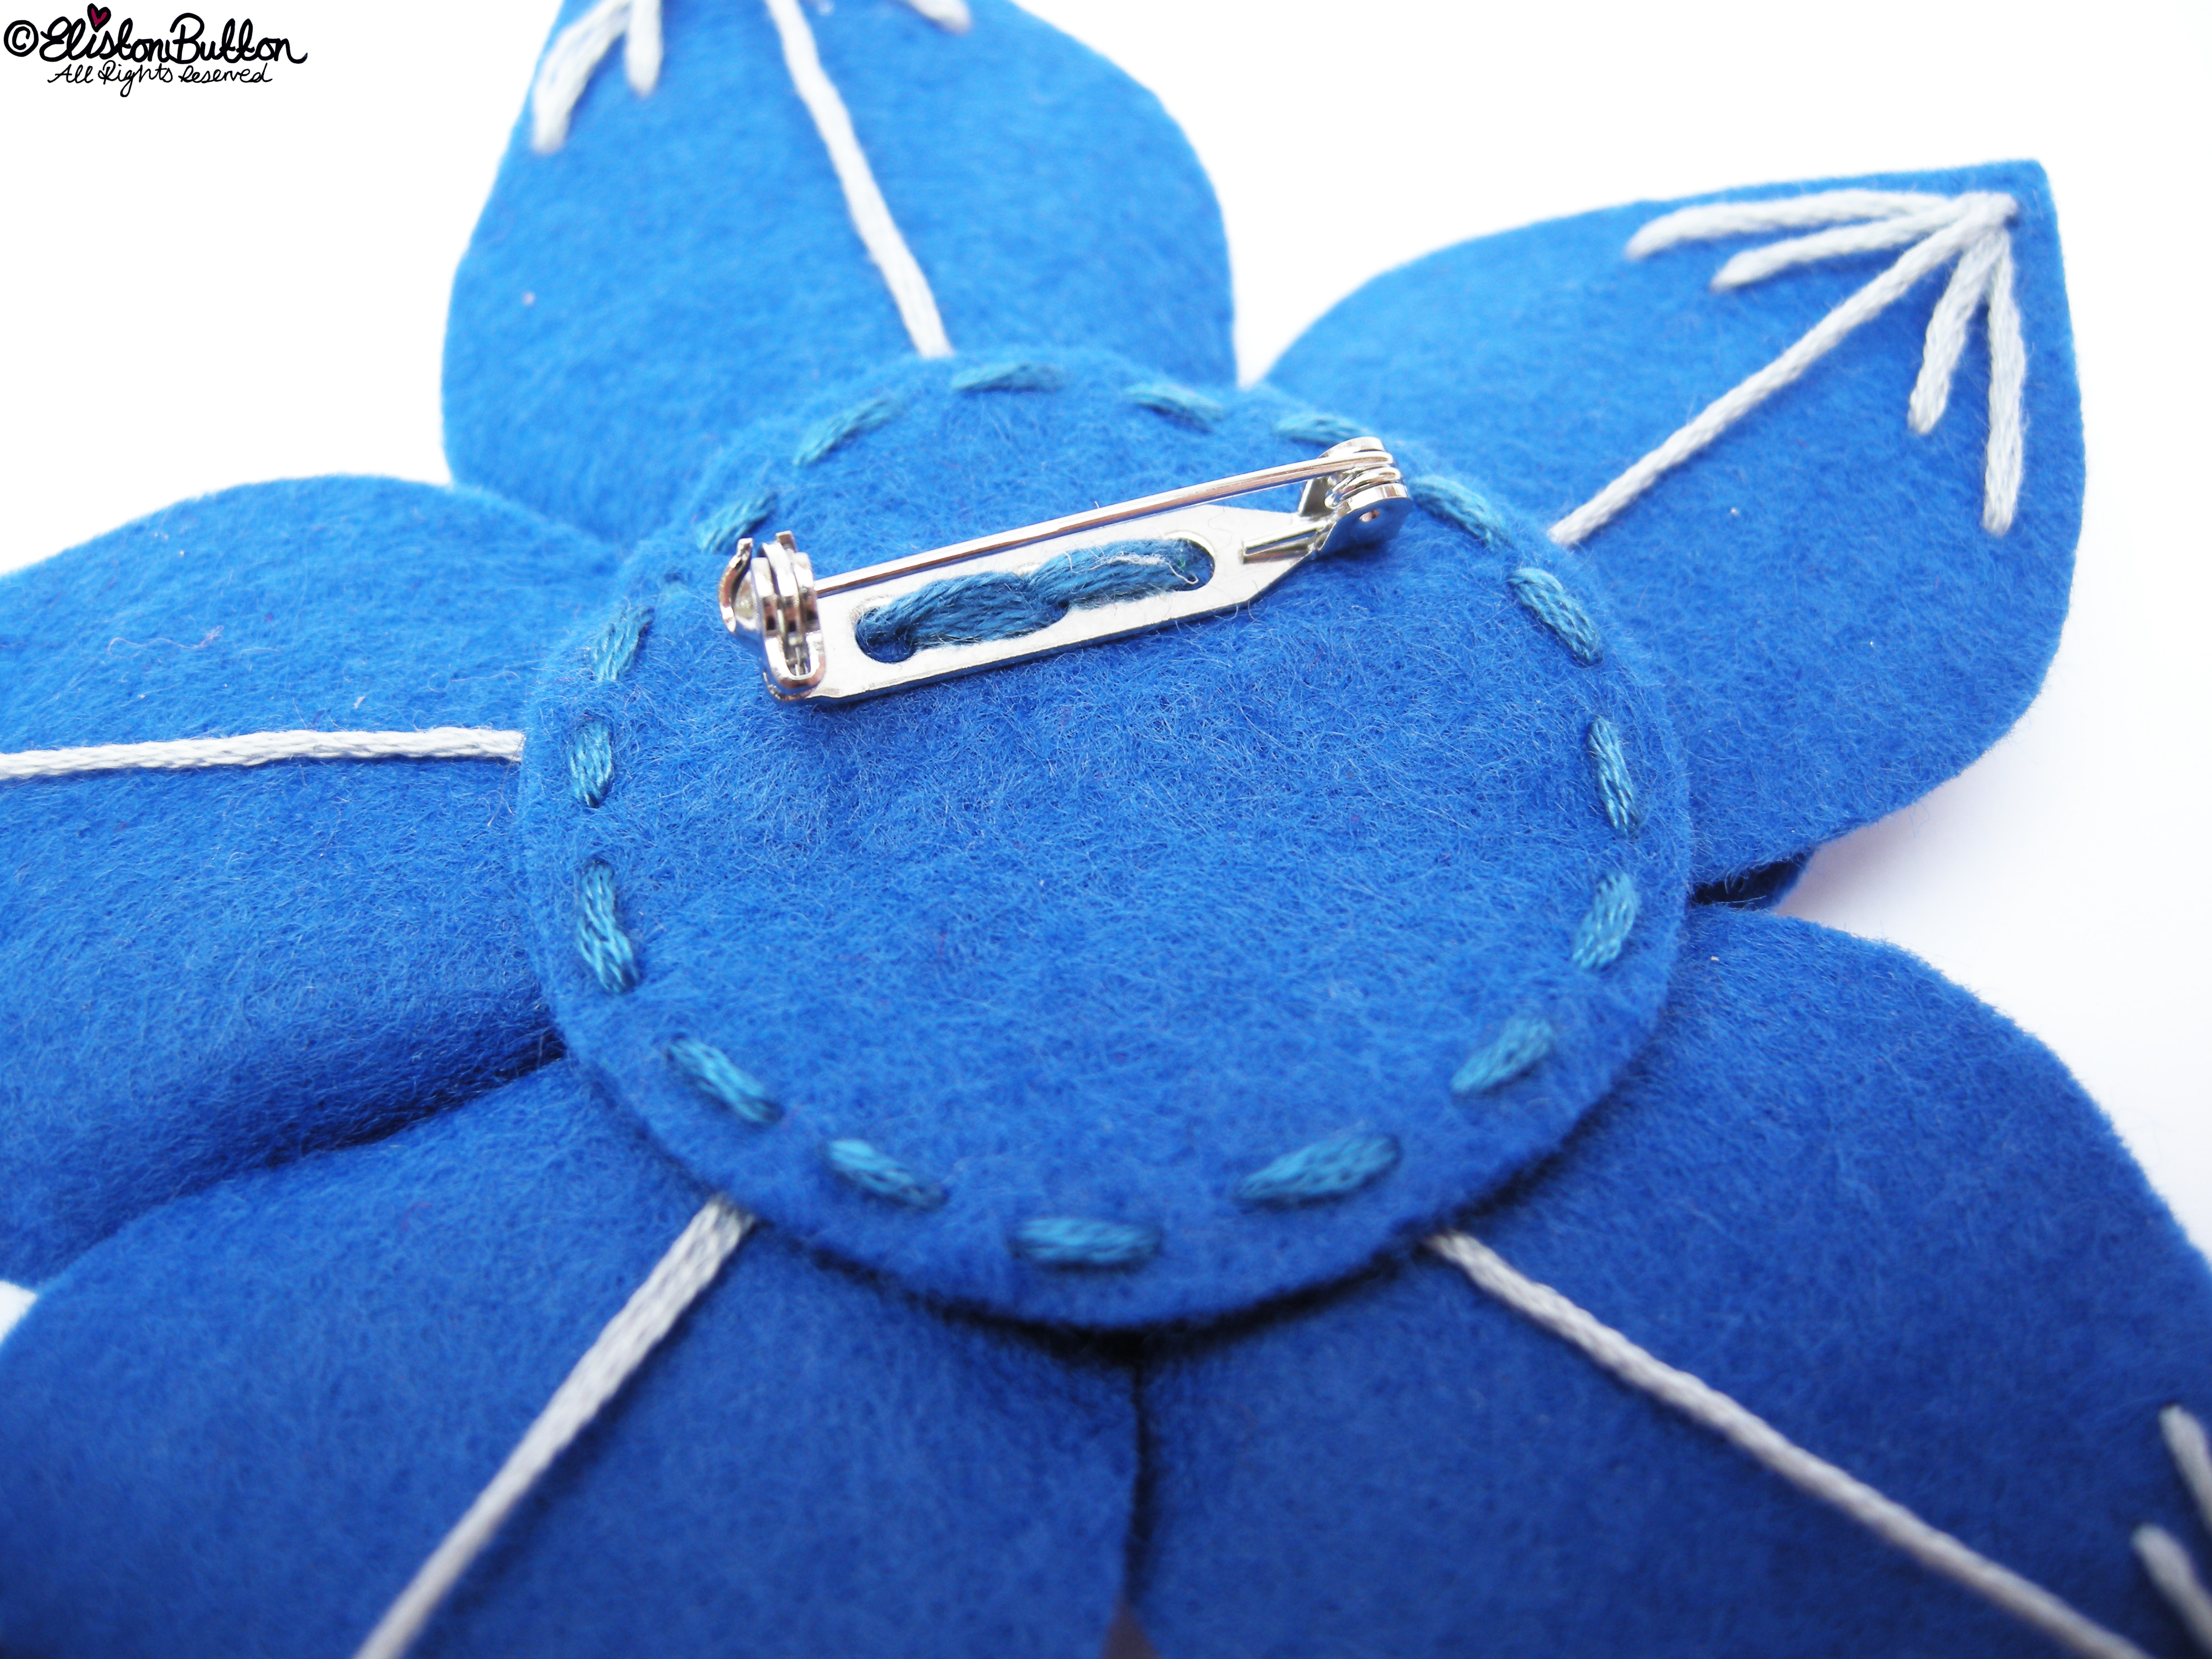 Out of the Blue Embroidered Felt Flower Brooch - Back View - 27 Before 27 - Out of the Blue at www.elistonbutton.com - Eliston Button - That Crafty Kid – Art, Design, Craft & Adventure.